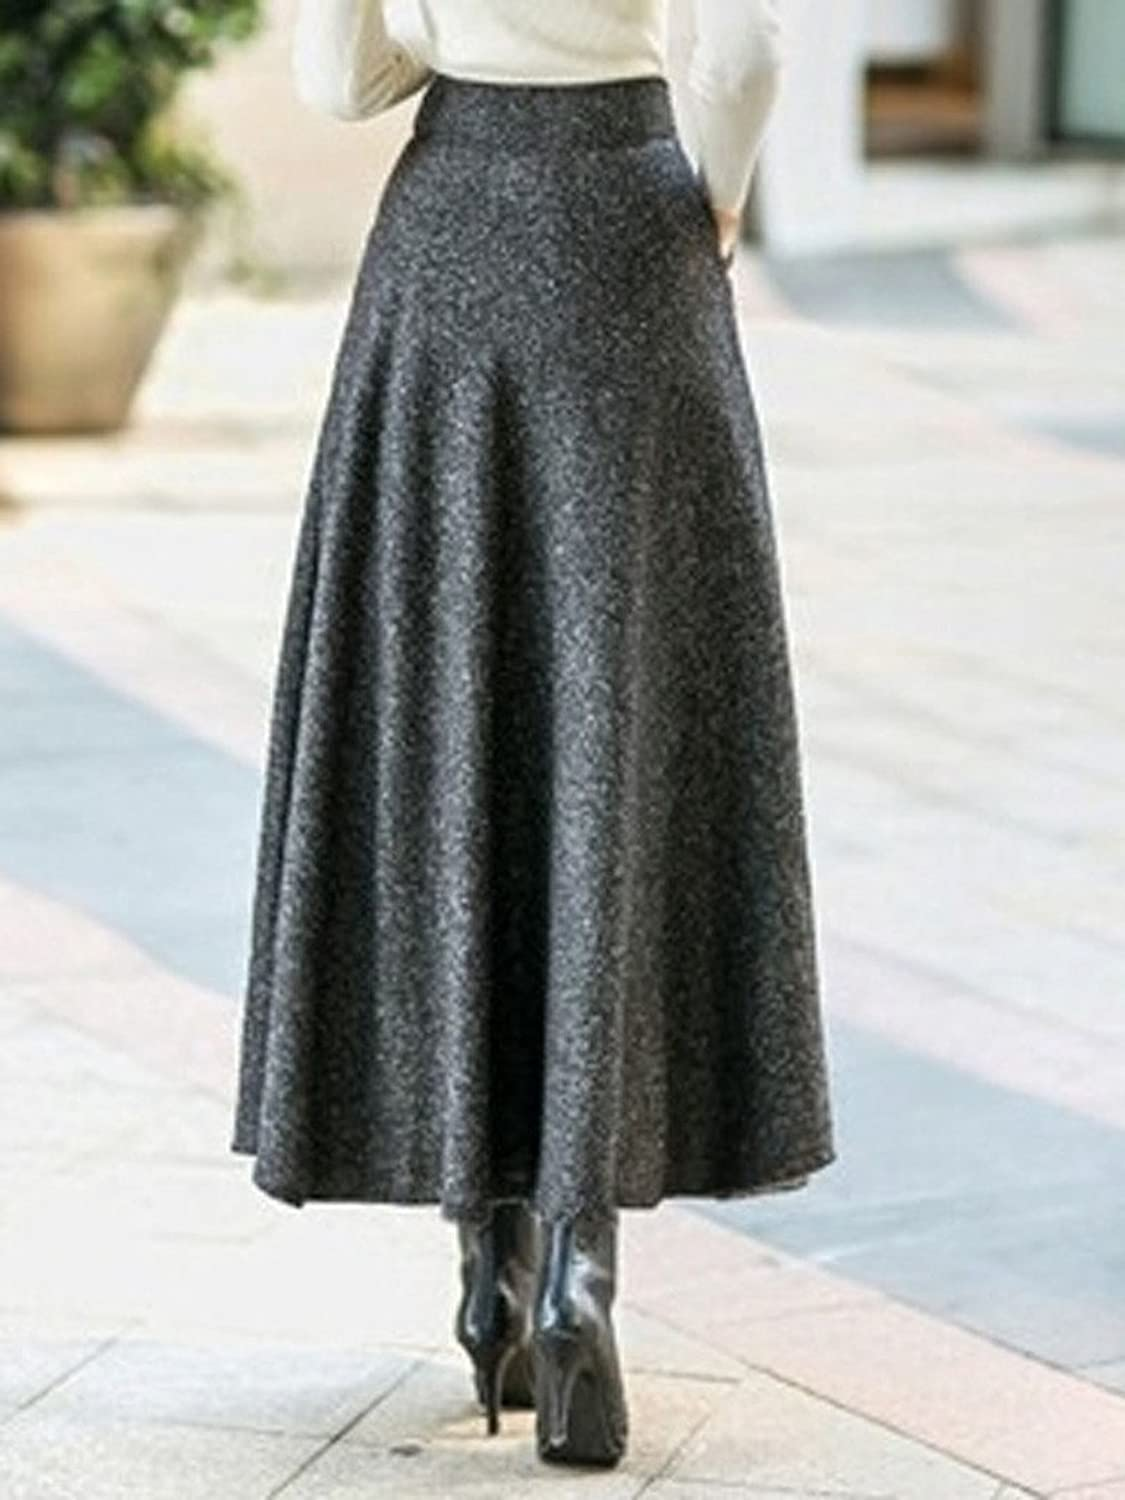 Wonder Woman Movie 1918 Clothing: Diana's London Costumes CR Womens High Waist A-line Flared Long Skirt Winter Fall Midi Skirt $27.99 AT vintagedancer.com